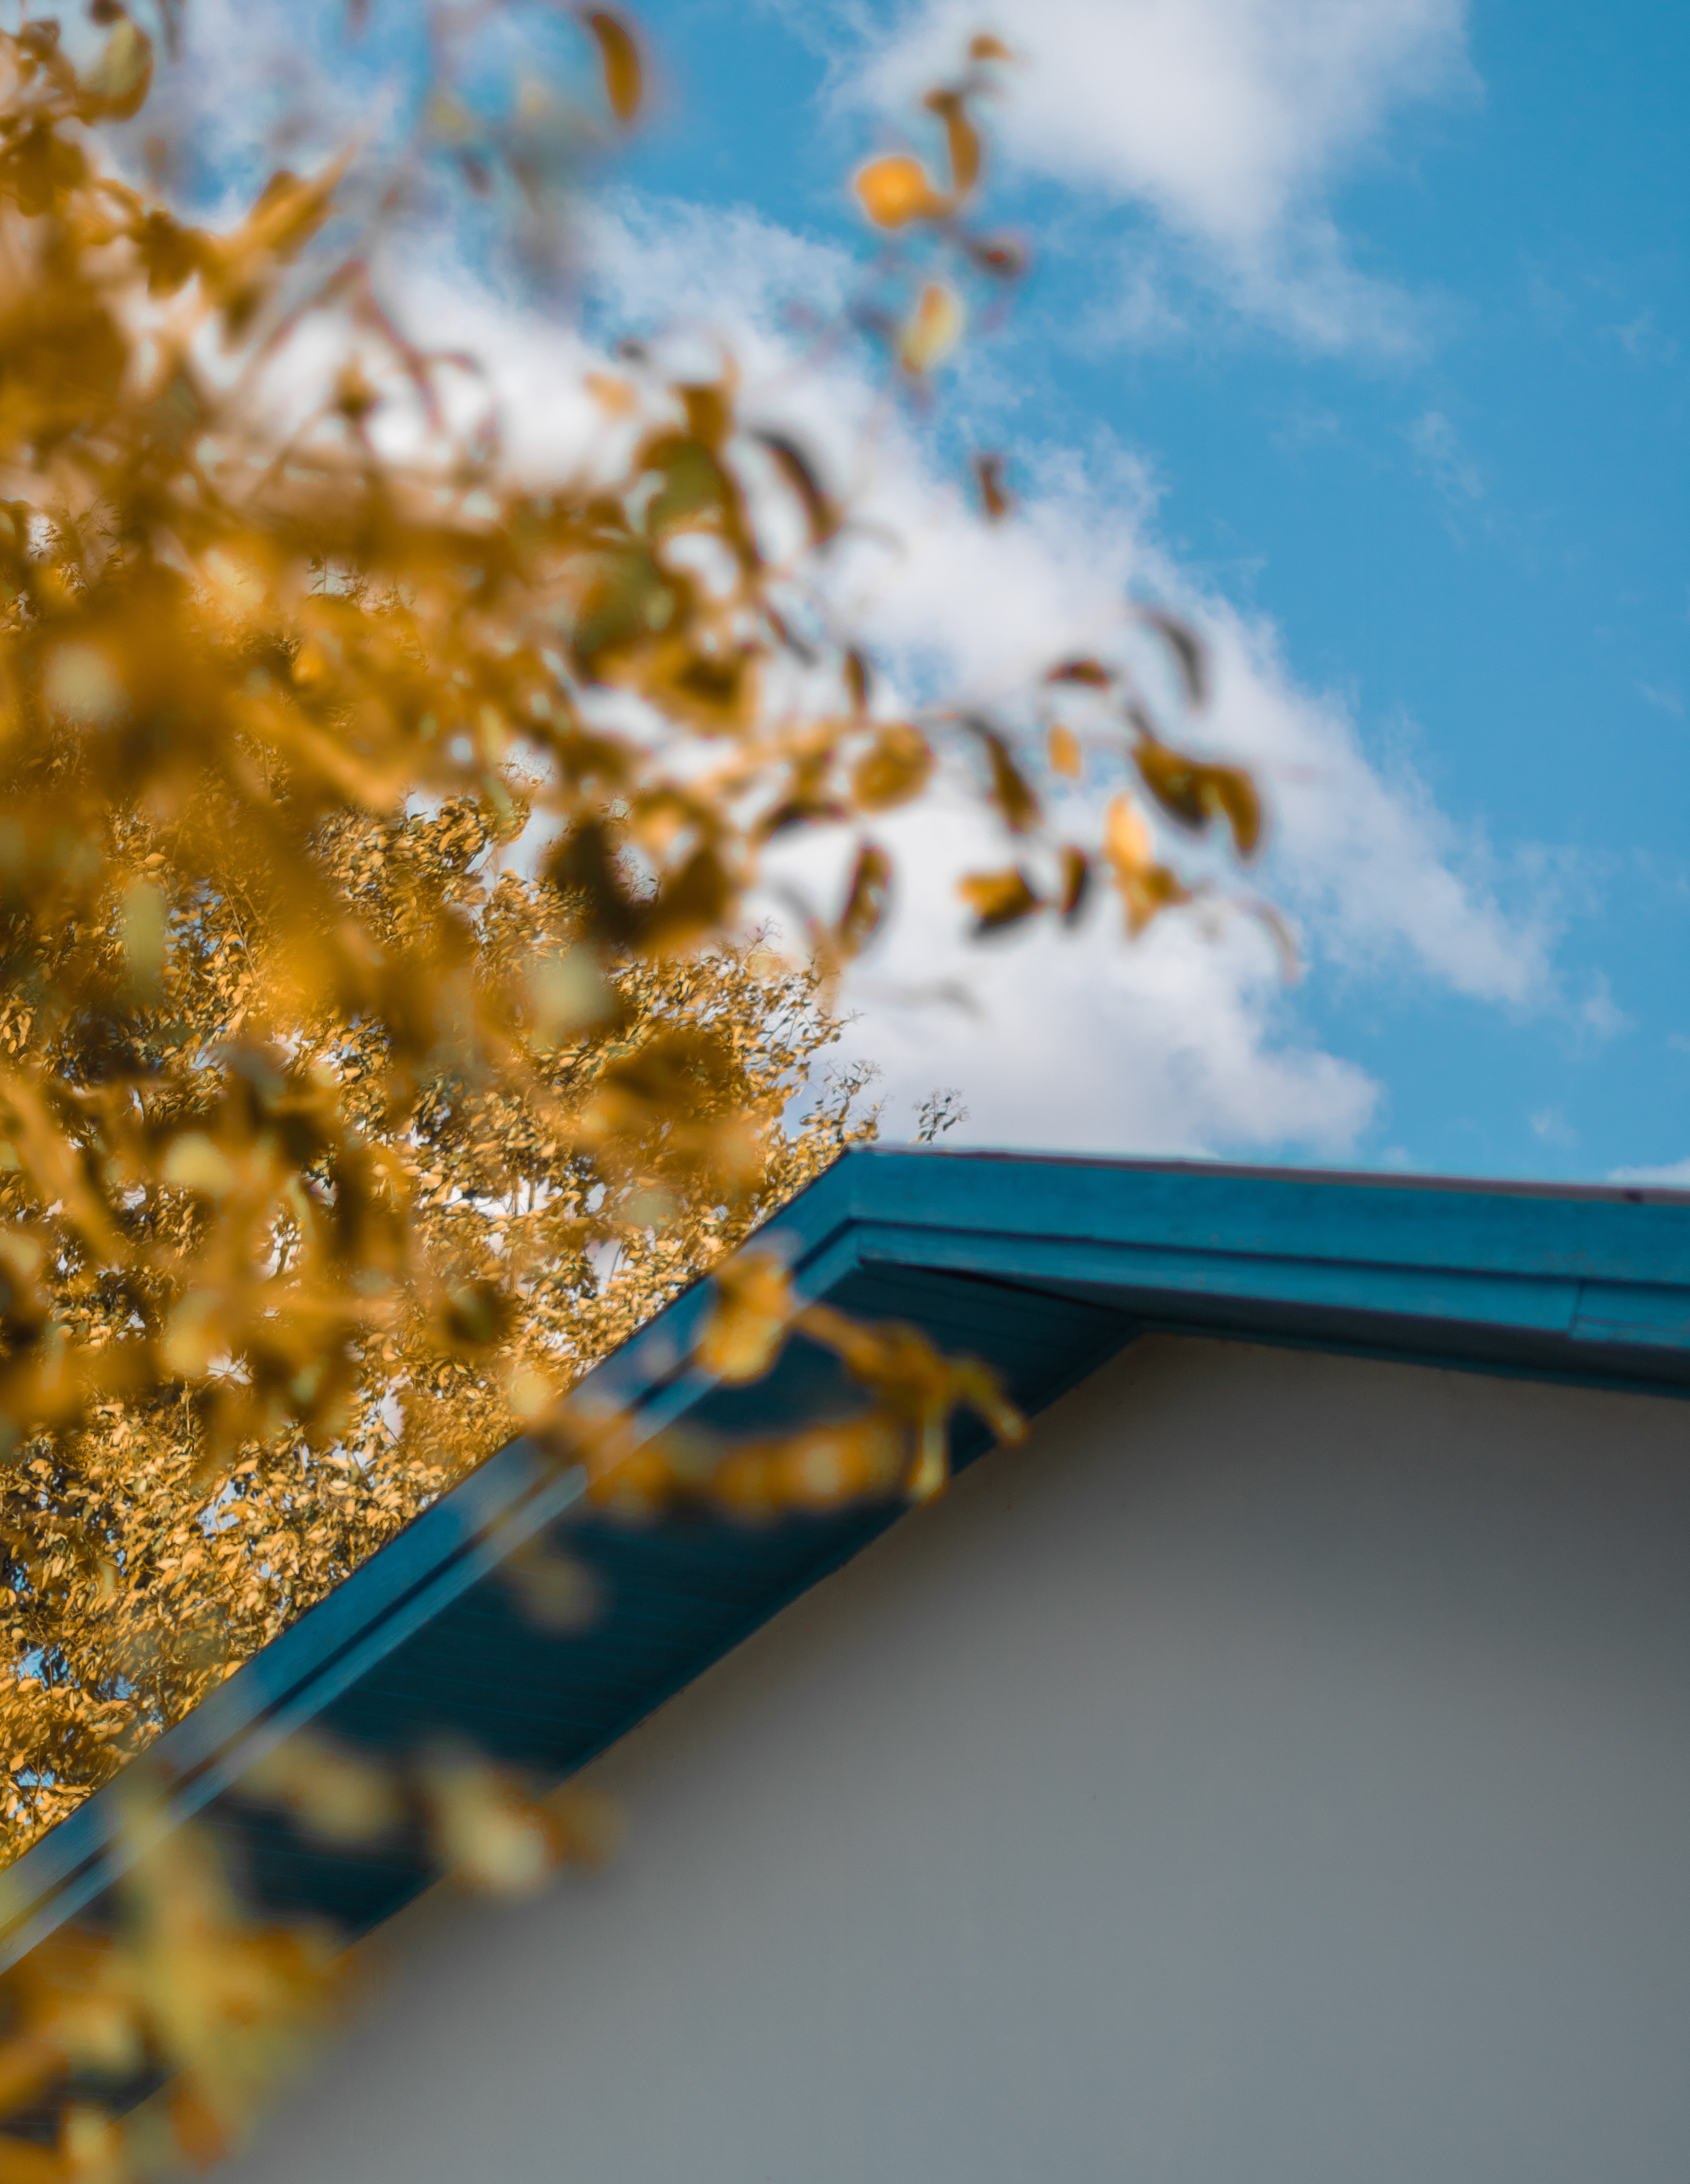 closeup photo of brown tree beside white and blue house under blue and white sky at daytime